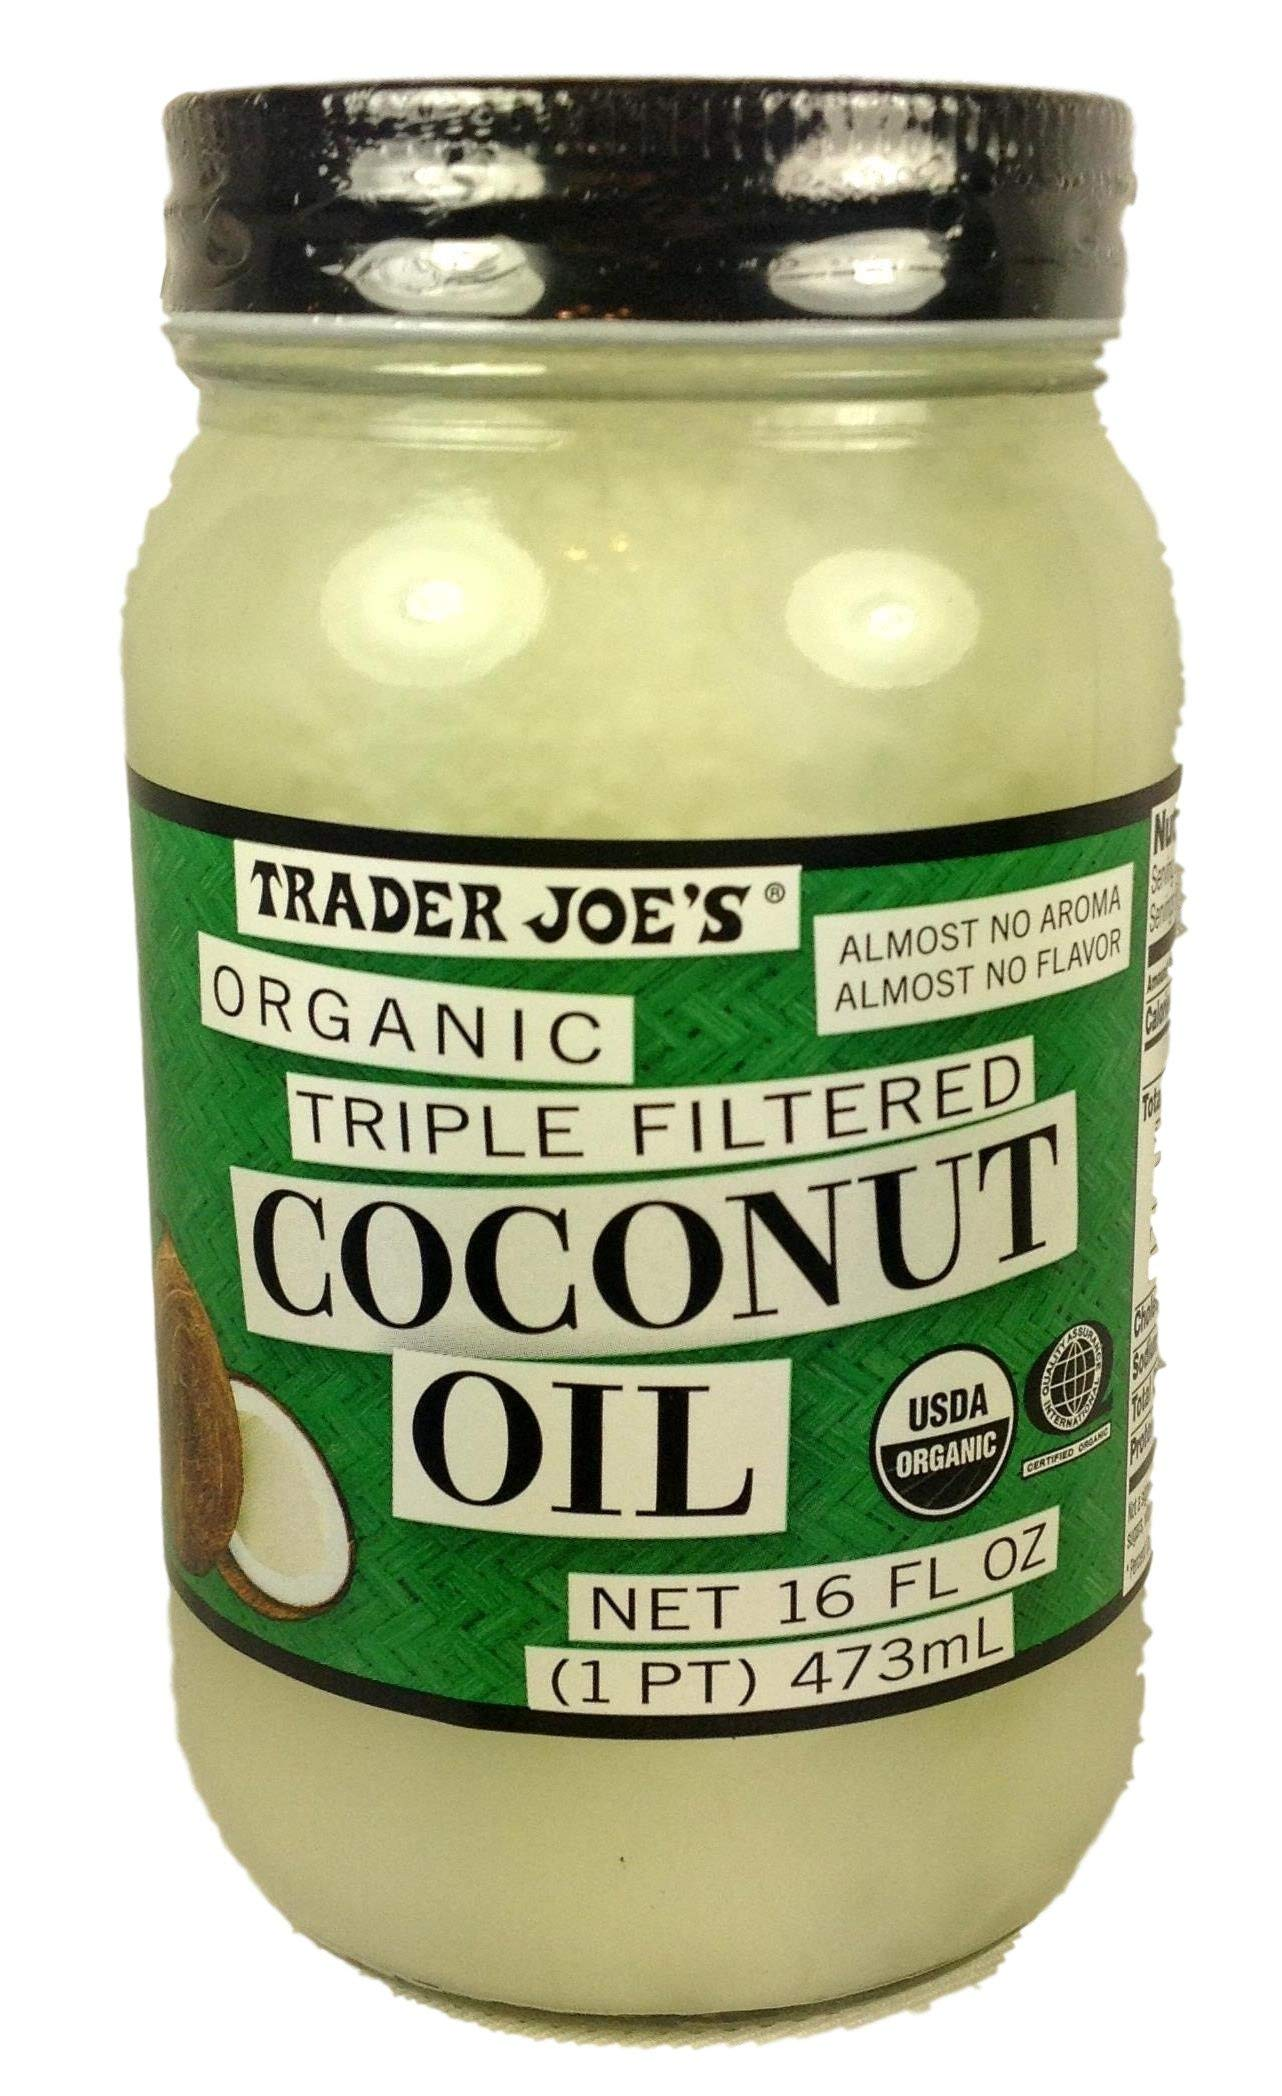 Trader Joe's - Trader Joe's Organic Triple Filtered Coconut Oil